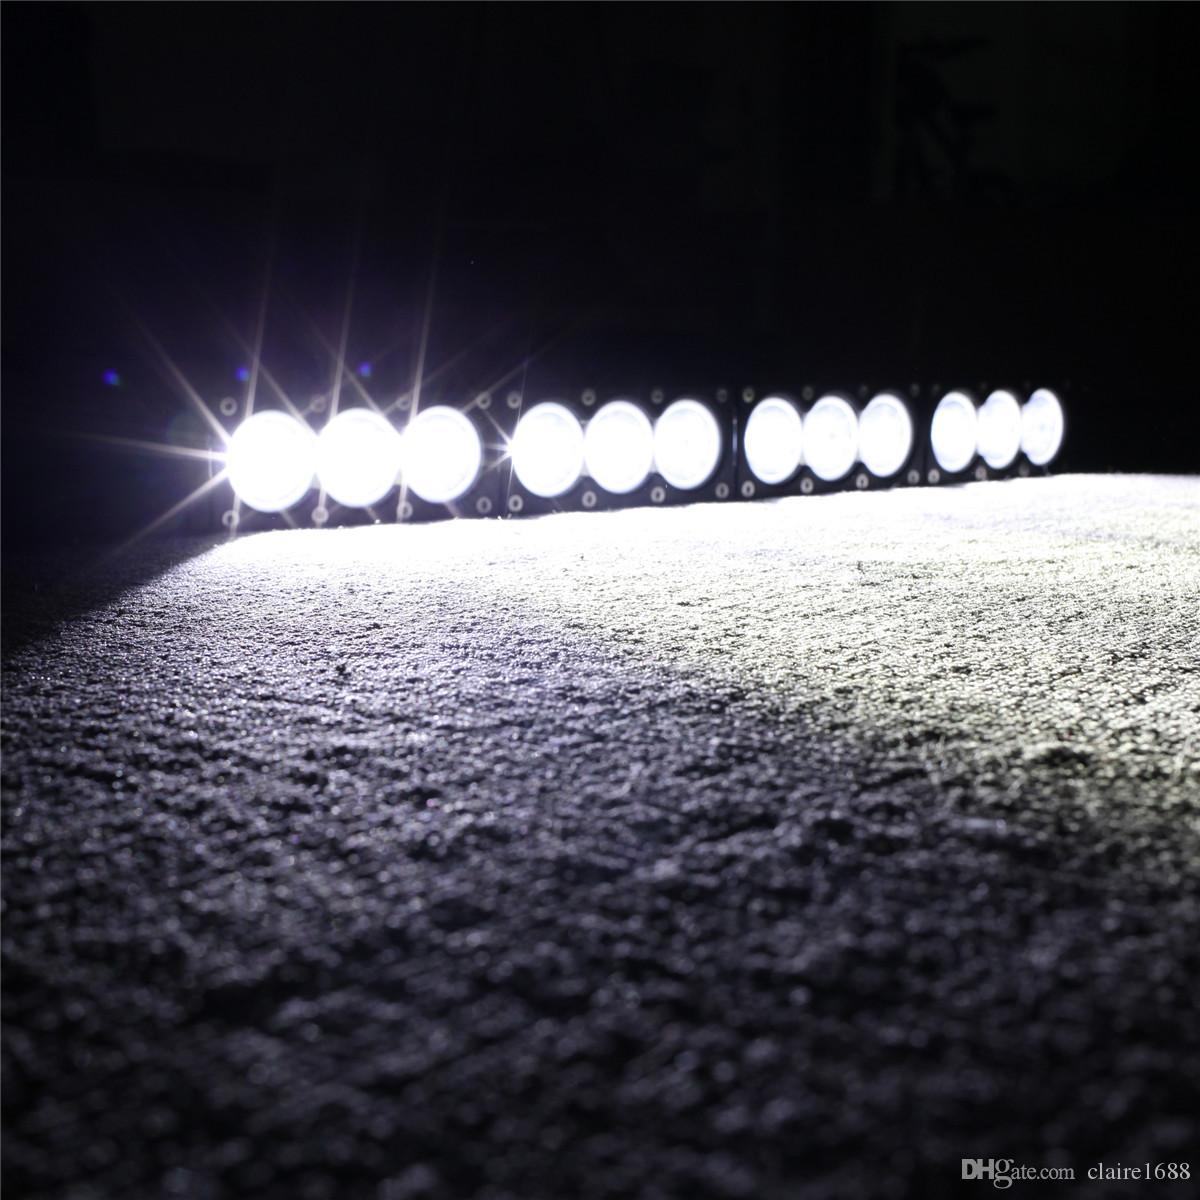 By dhl 4x4 led light bar 272 inch 150w 12750 lumen cree 12 volt by dhl 4x4 led light bar 272 inch 150w 12750 lumen cree 12 volt led light bar single row curved led light bar car led light bar 12v 20inch led light bar aloadofball Image collections